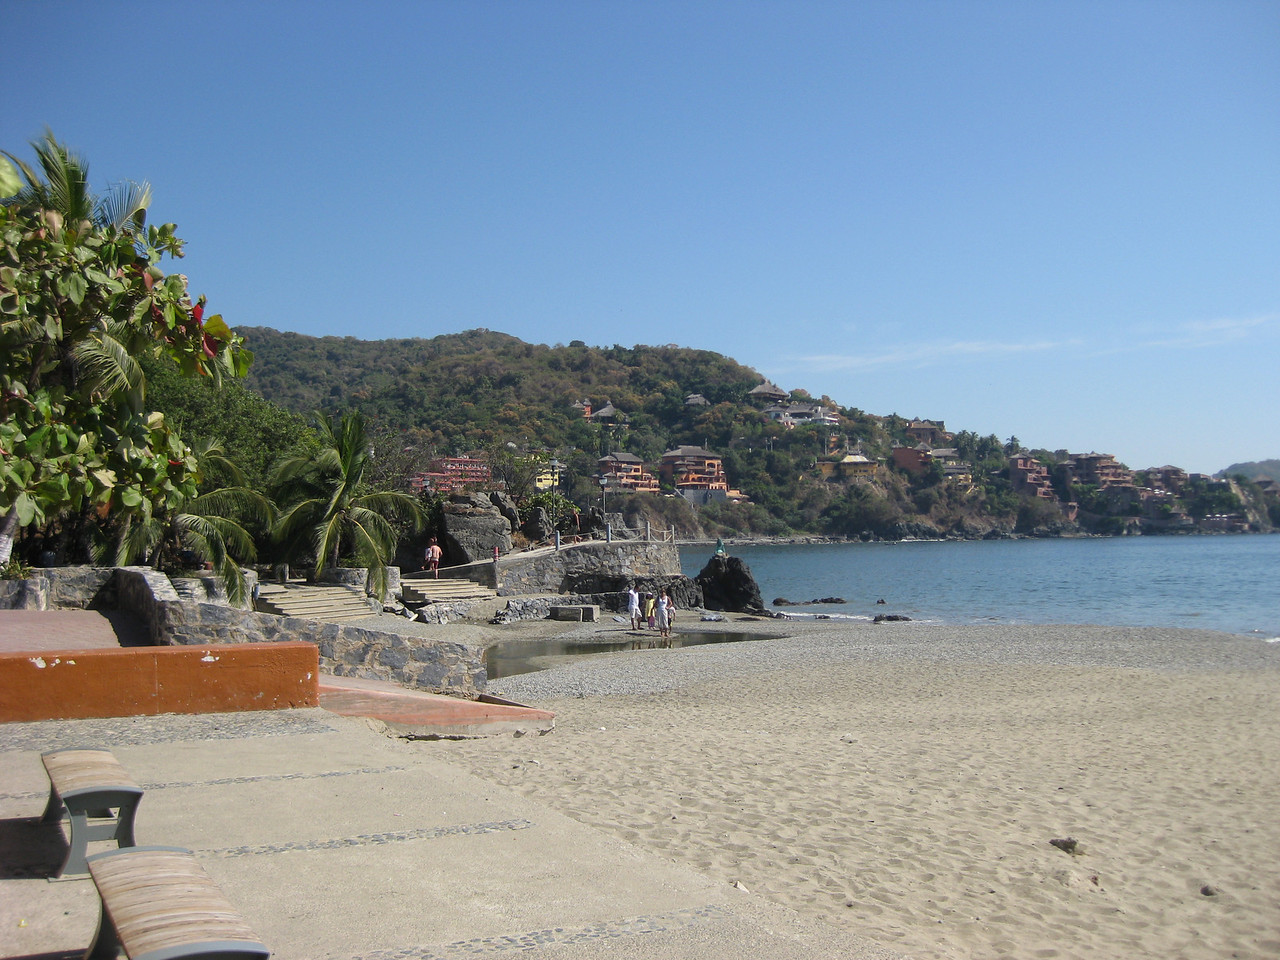 Playa Madera, in front of the Museum, looking back towards the Hotel Irma with a slight view of the boardwalk.